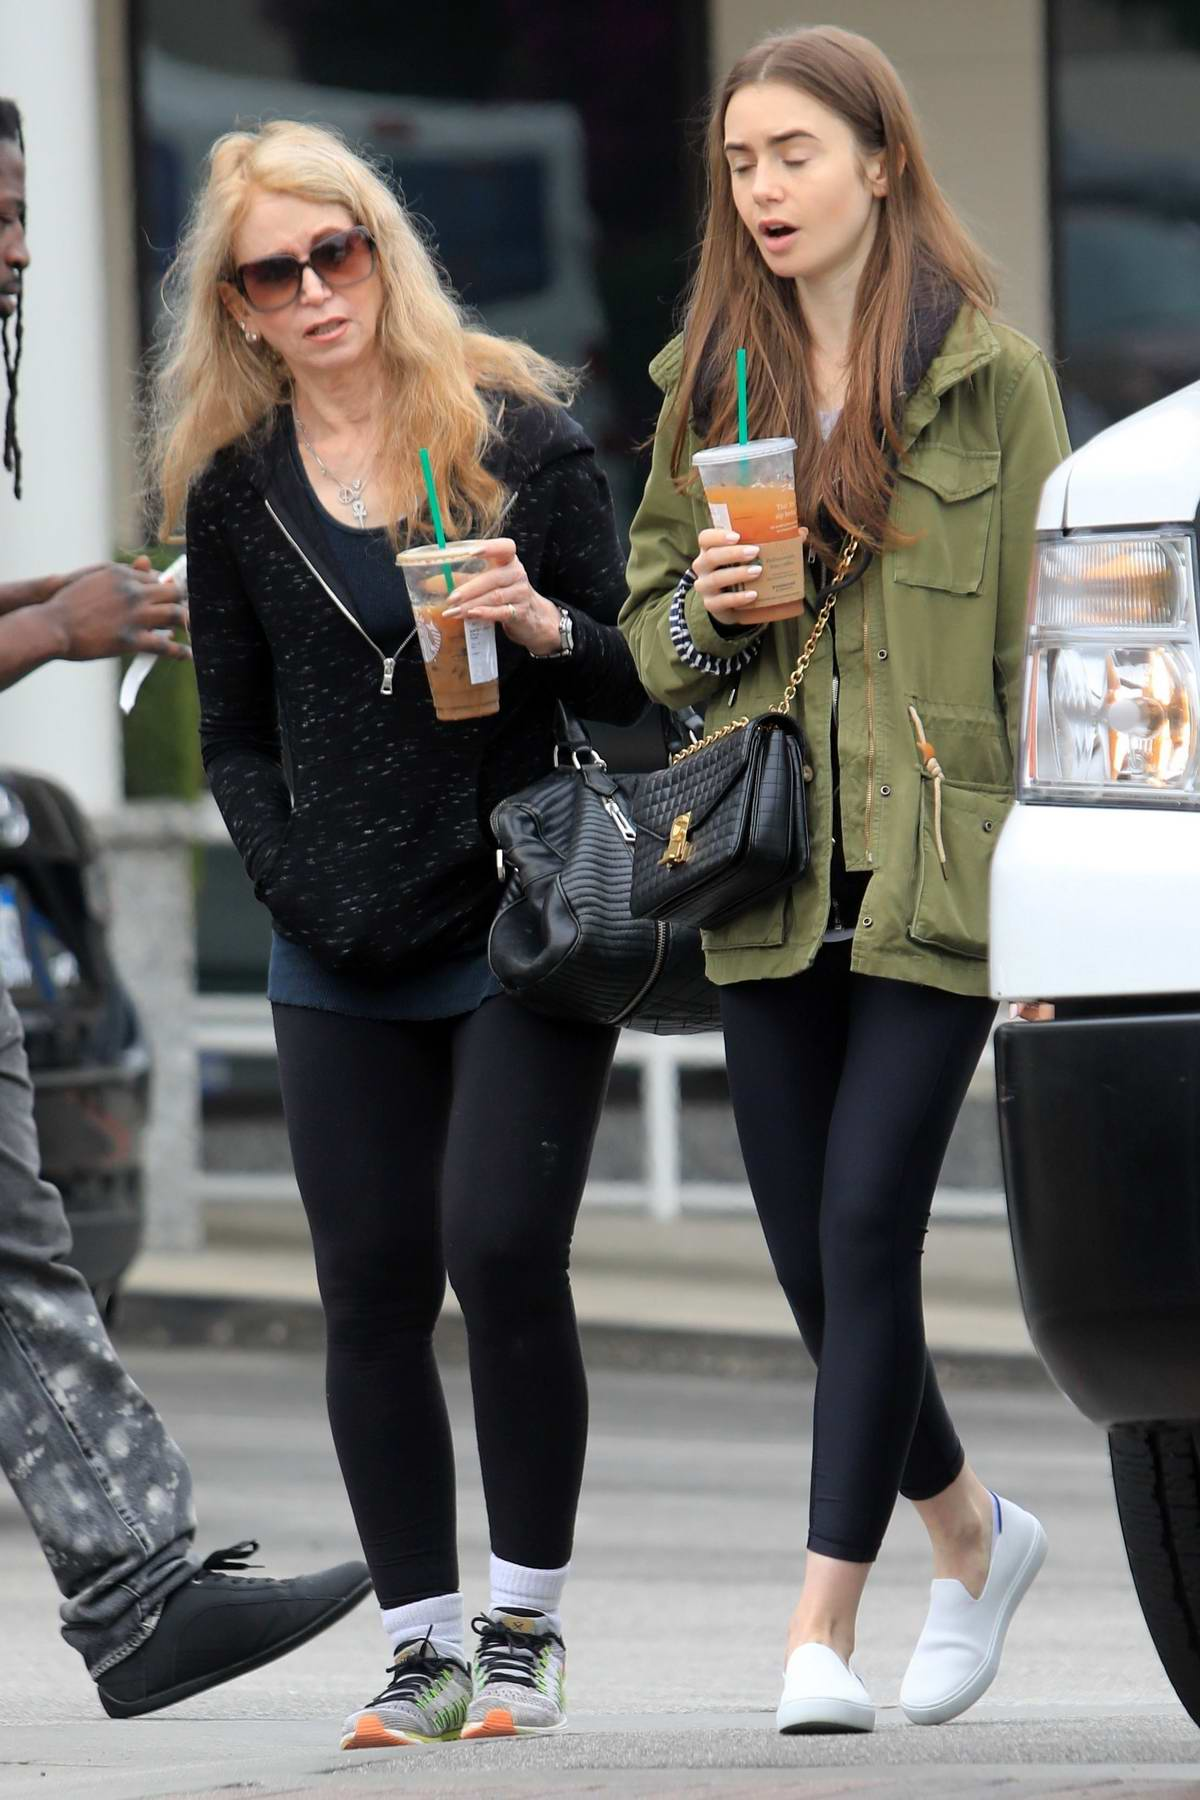 Lily Collins And Her Mother Jill Tavelman Seen At Starbucks In West Hollywood Los Angeles 140519 5 Изучайте релизы jill tavelman на discogs. mother jill tavelman seen at starbucks